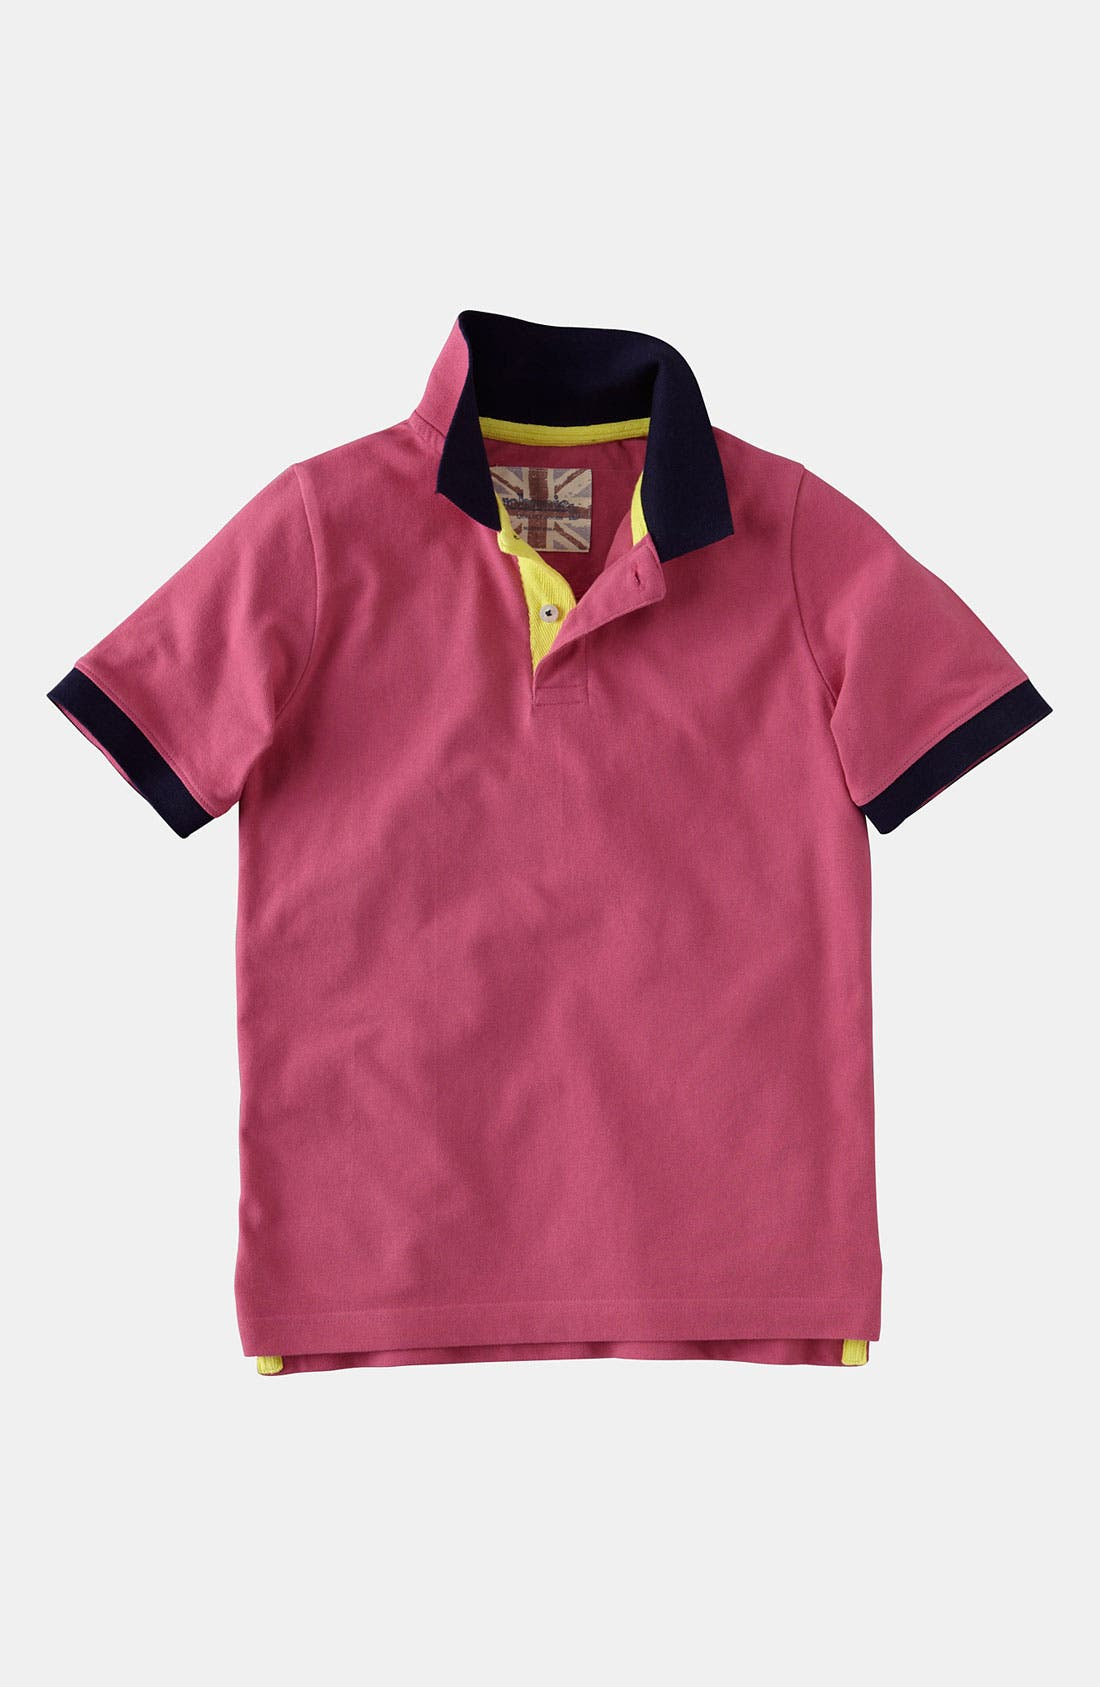 Alternate Image 1 Selected - Johnnie b Polo Shirt (Big Boys)